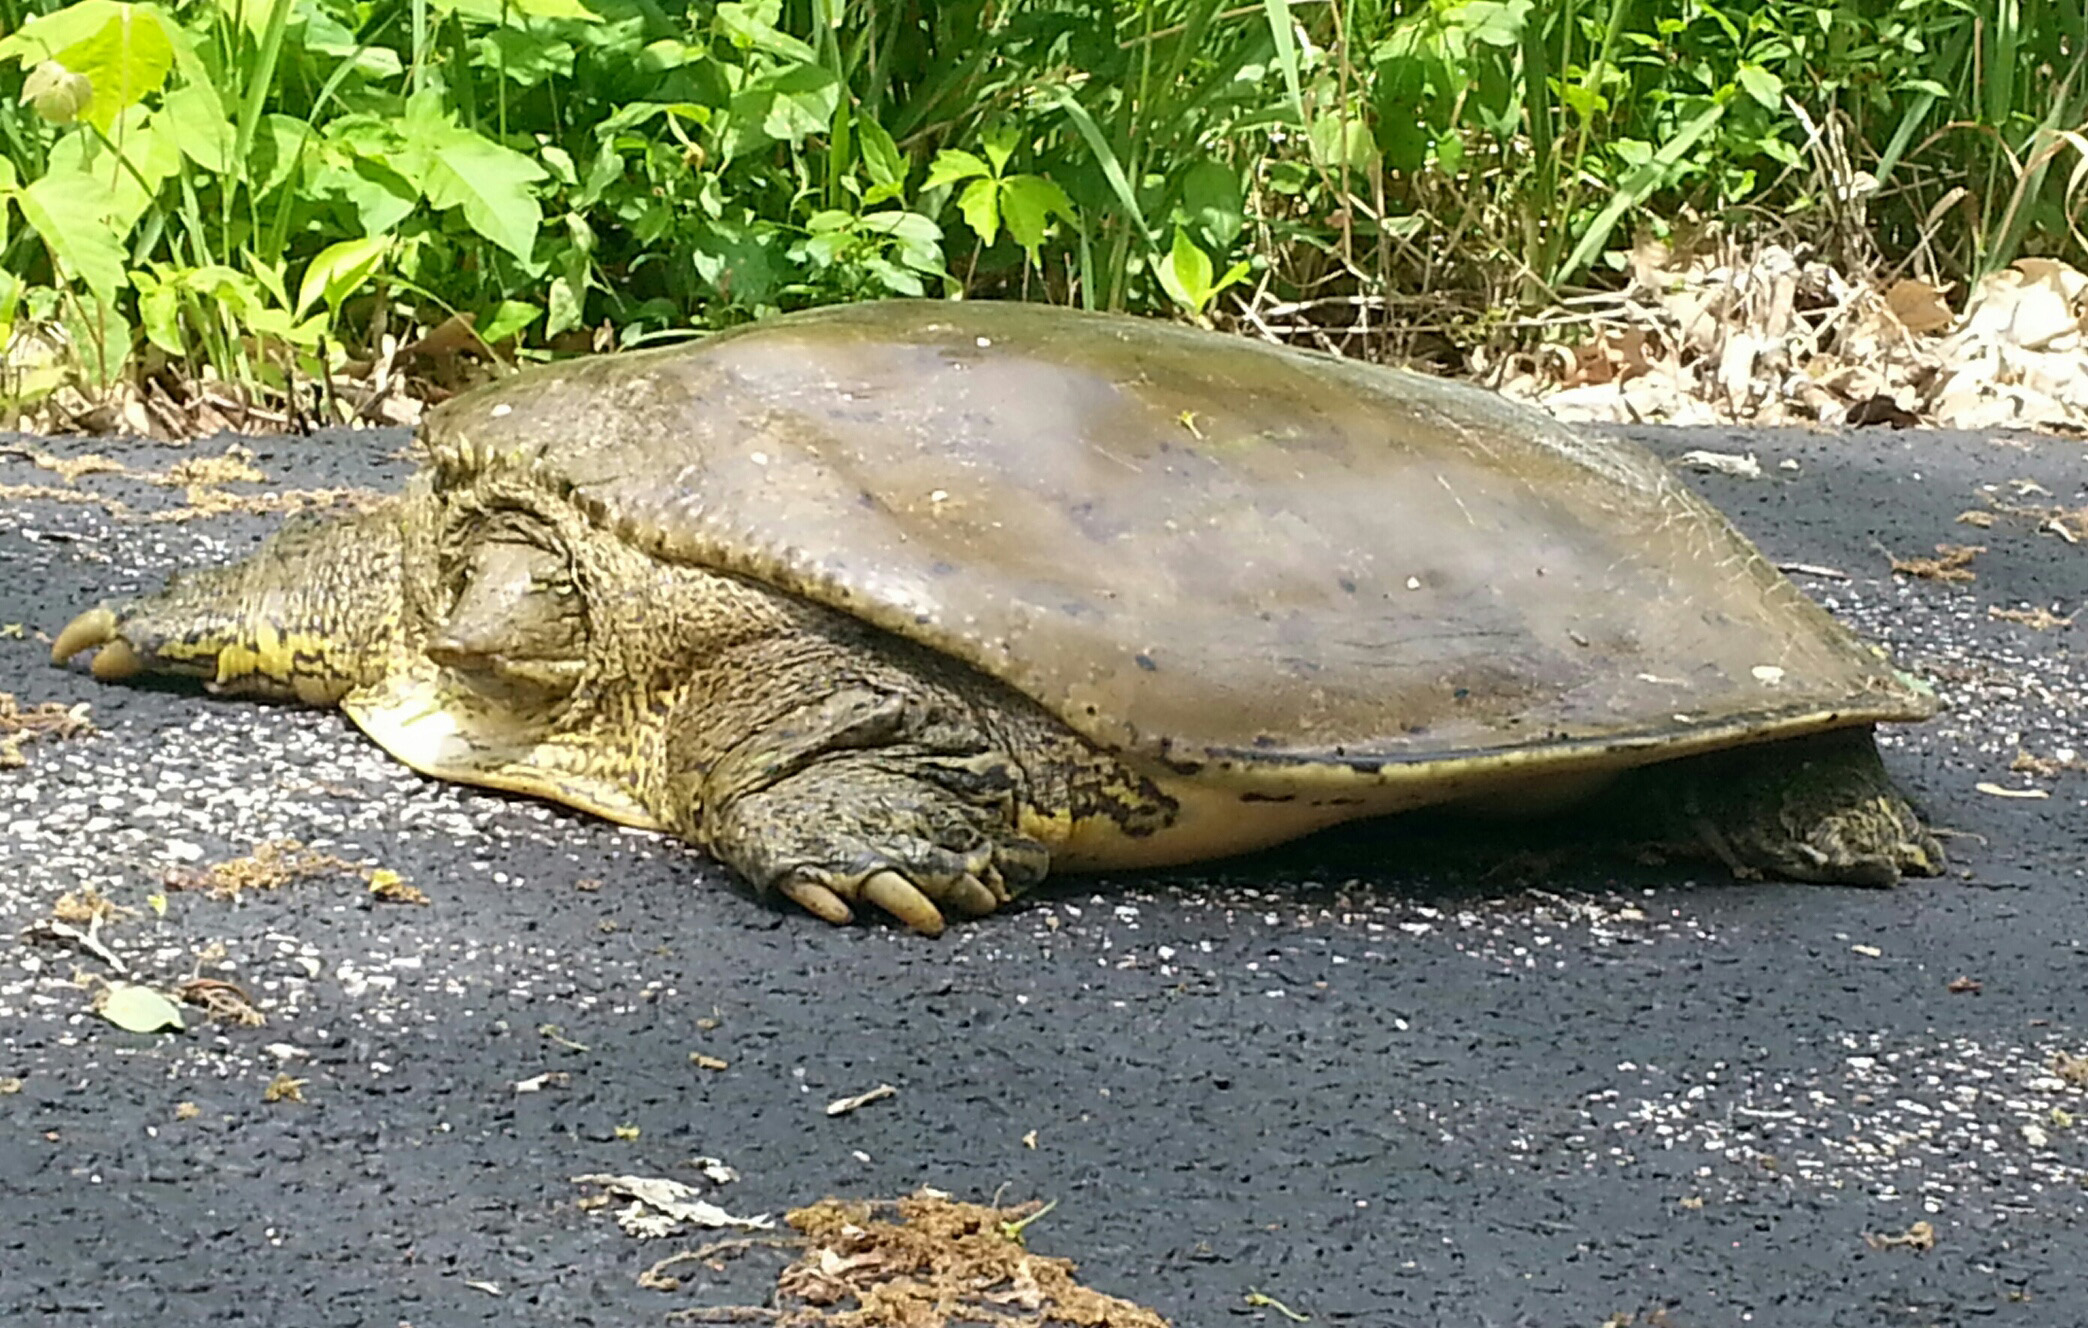 A spiny softshell turtle enjoys the sun's rays on the path to Feynman Computing Center. Photo: Jeff Artel, WDRS